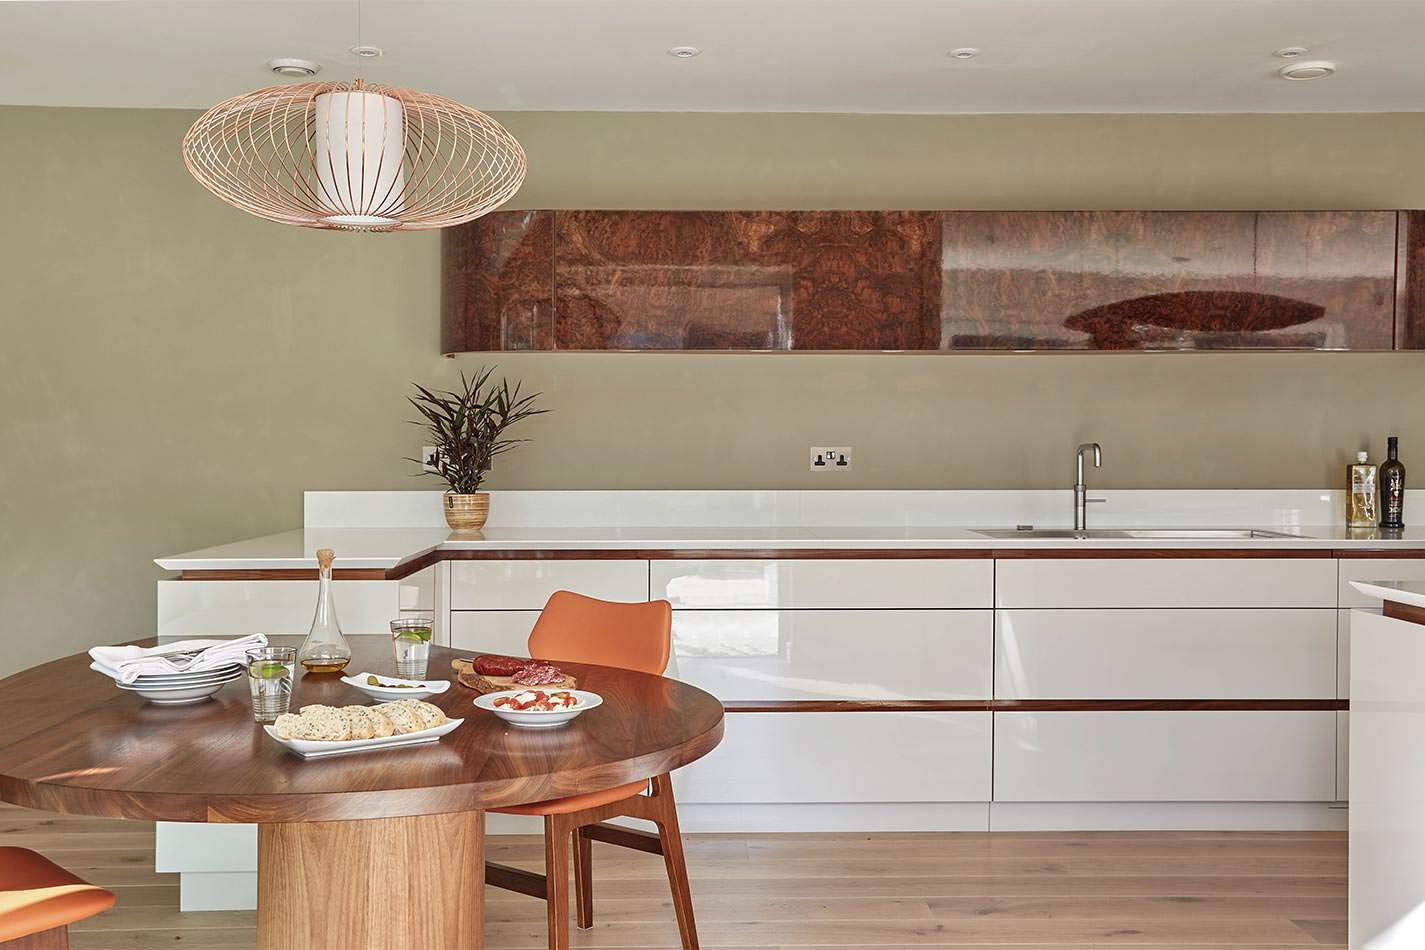 Single wall dine-in kitchen with polished white drawers, recessed lighting, and hardwood floors.